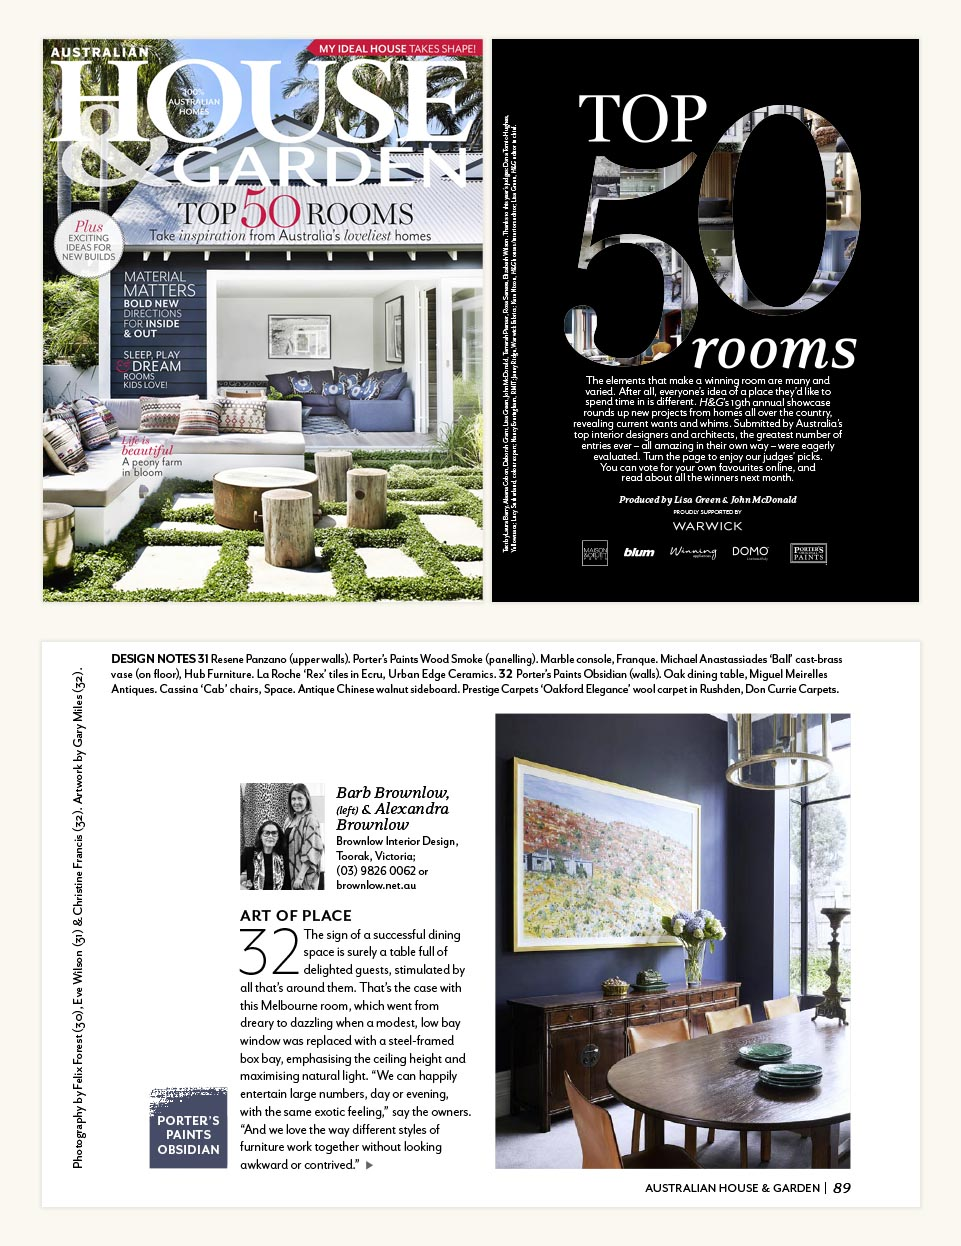 BID-Media-House & Garden-Squarespace-50%.jpg